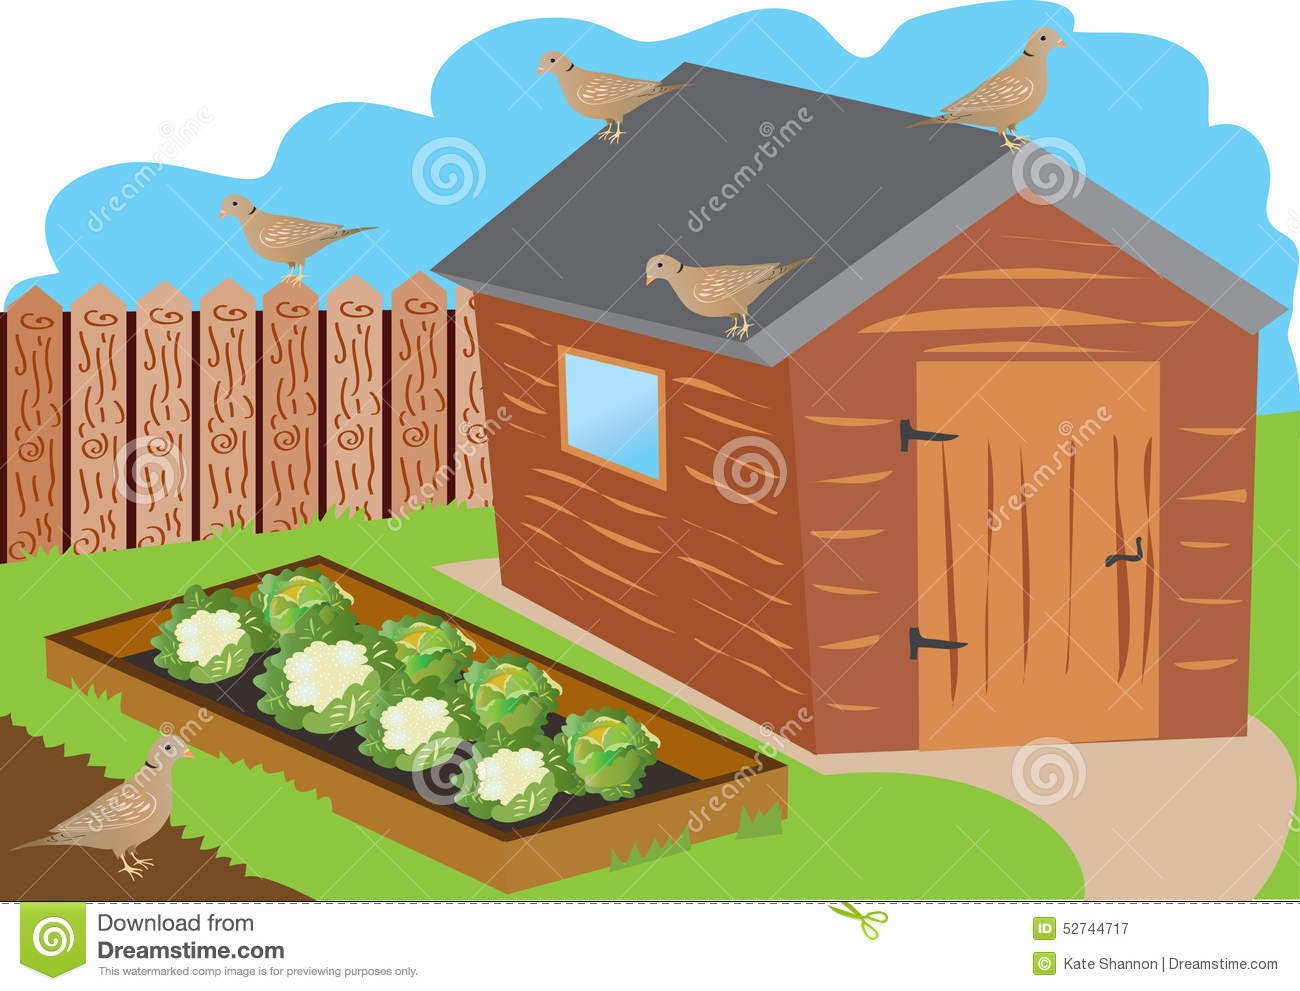 Allotment Garden Stock Vector - Image: 52744717